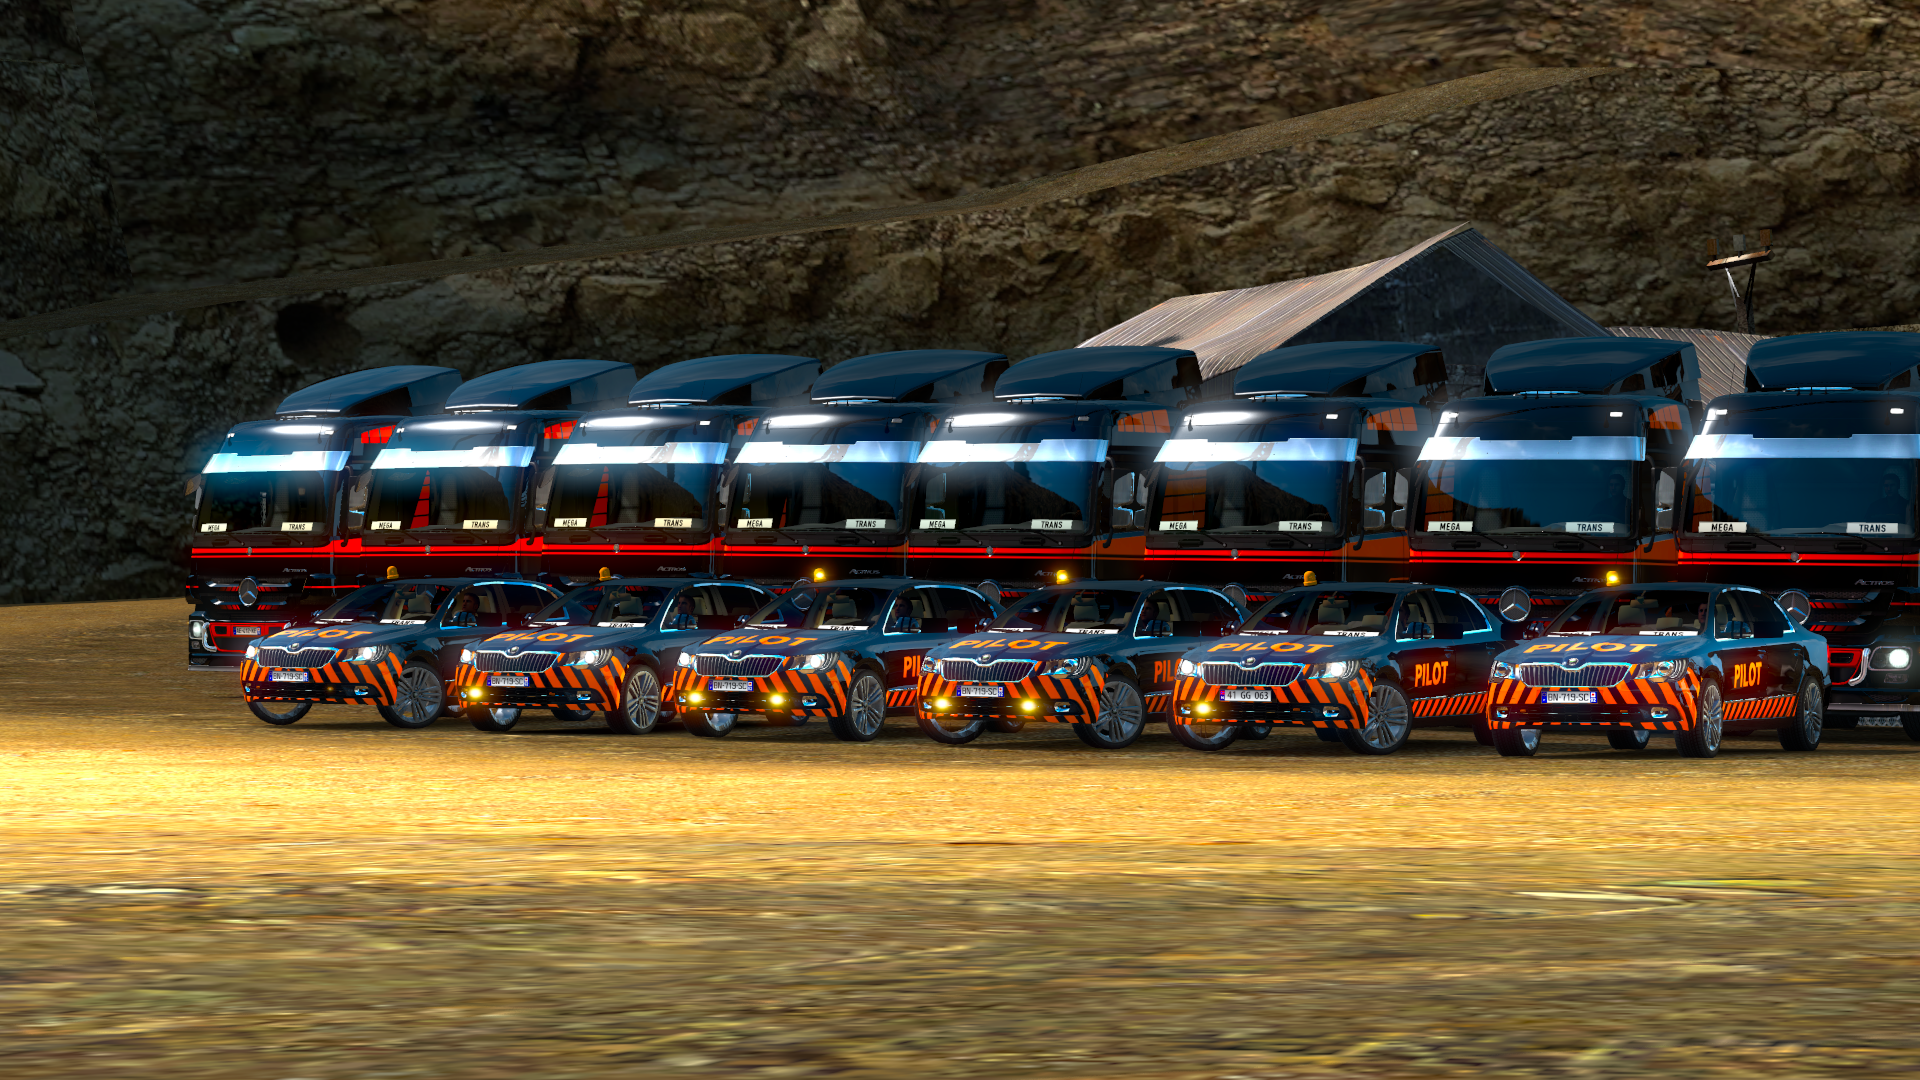 ets2_20190221_204520_00.png